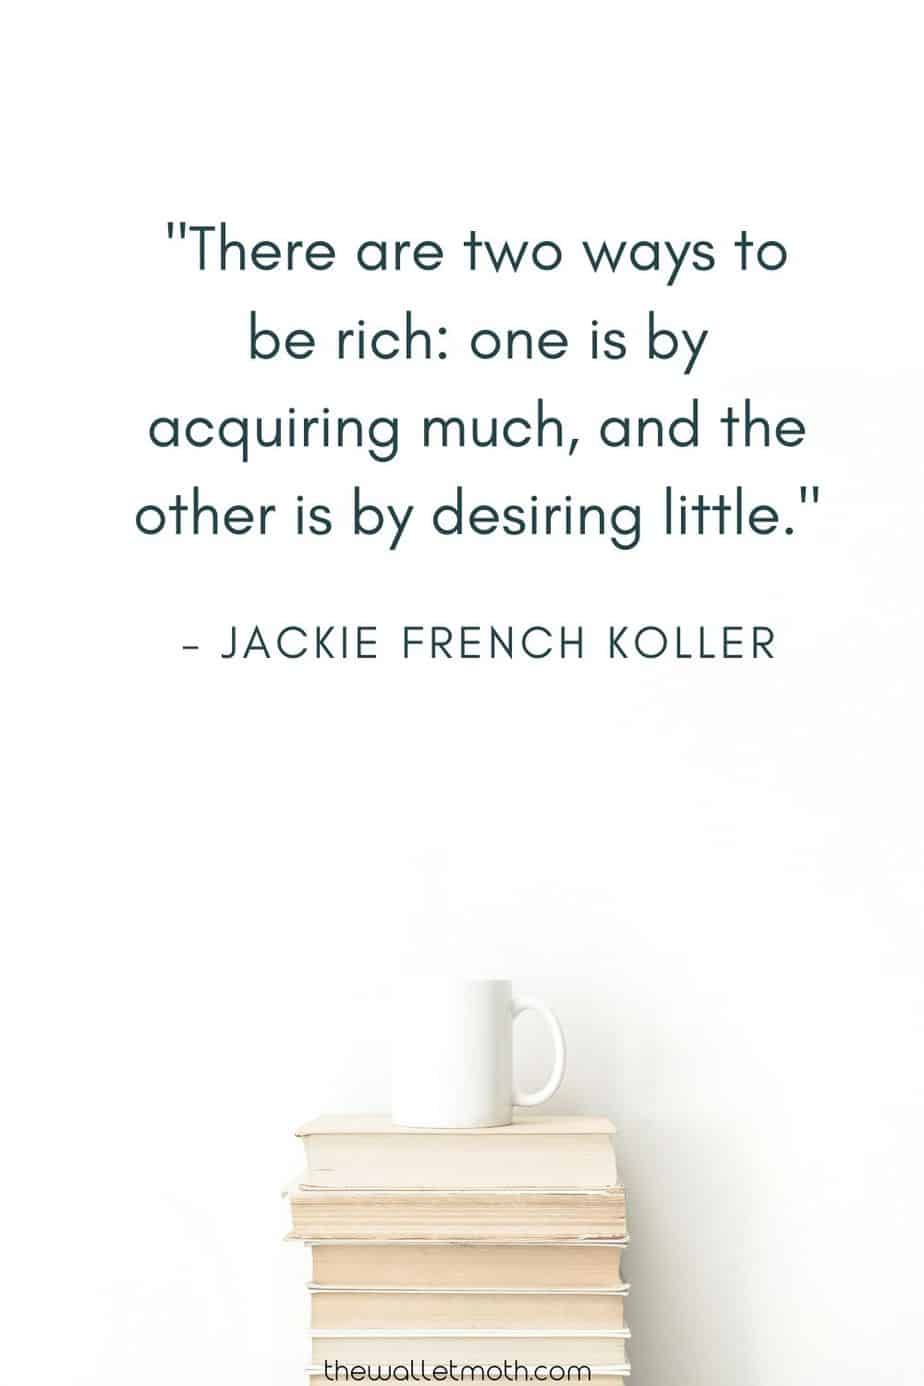 """""""There are two ways to be rich: one is by acquiring much, and the other is by desiring little."""" - Jackie French Koller"""